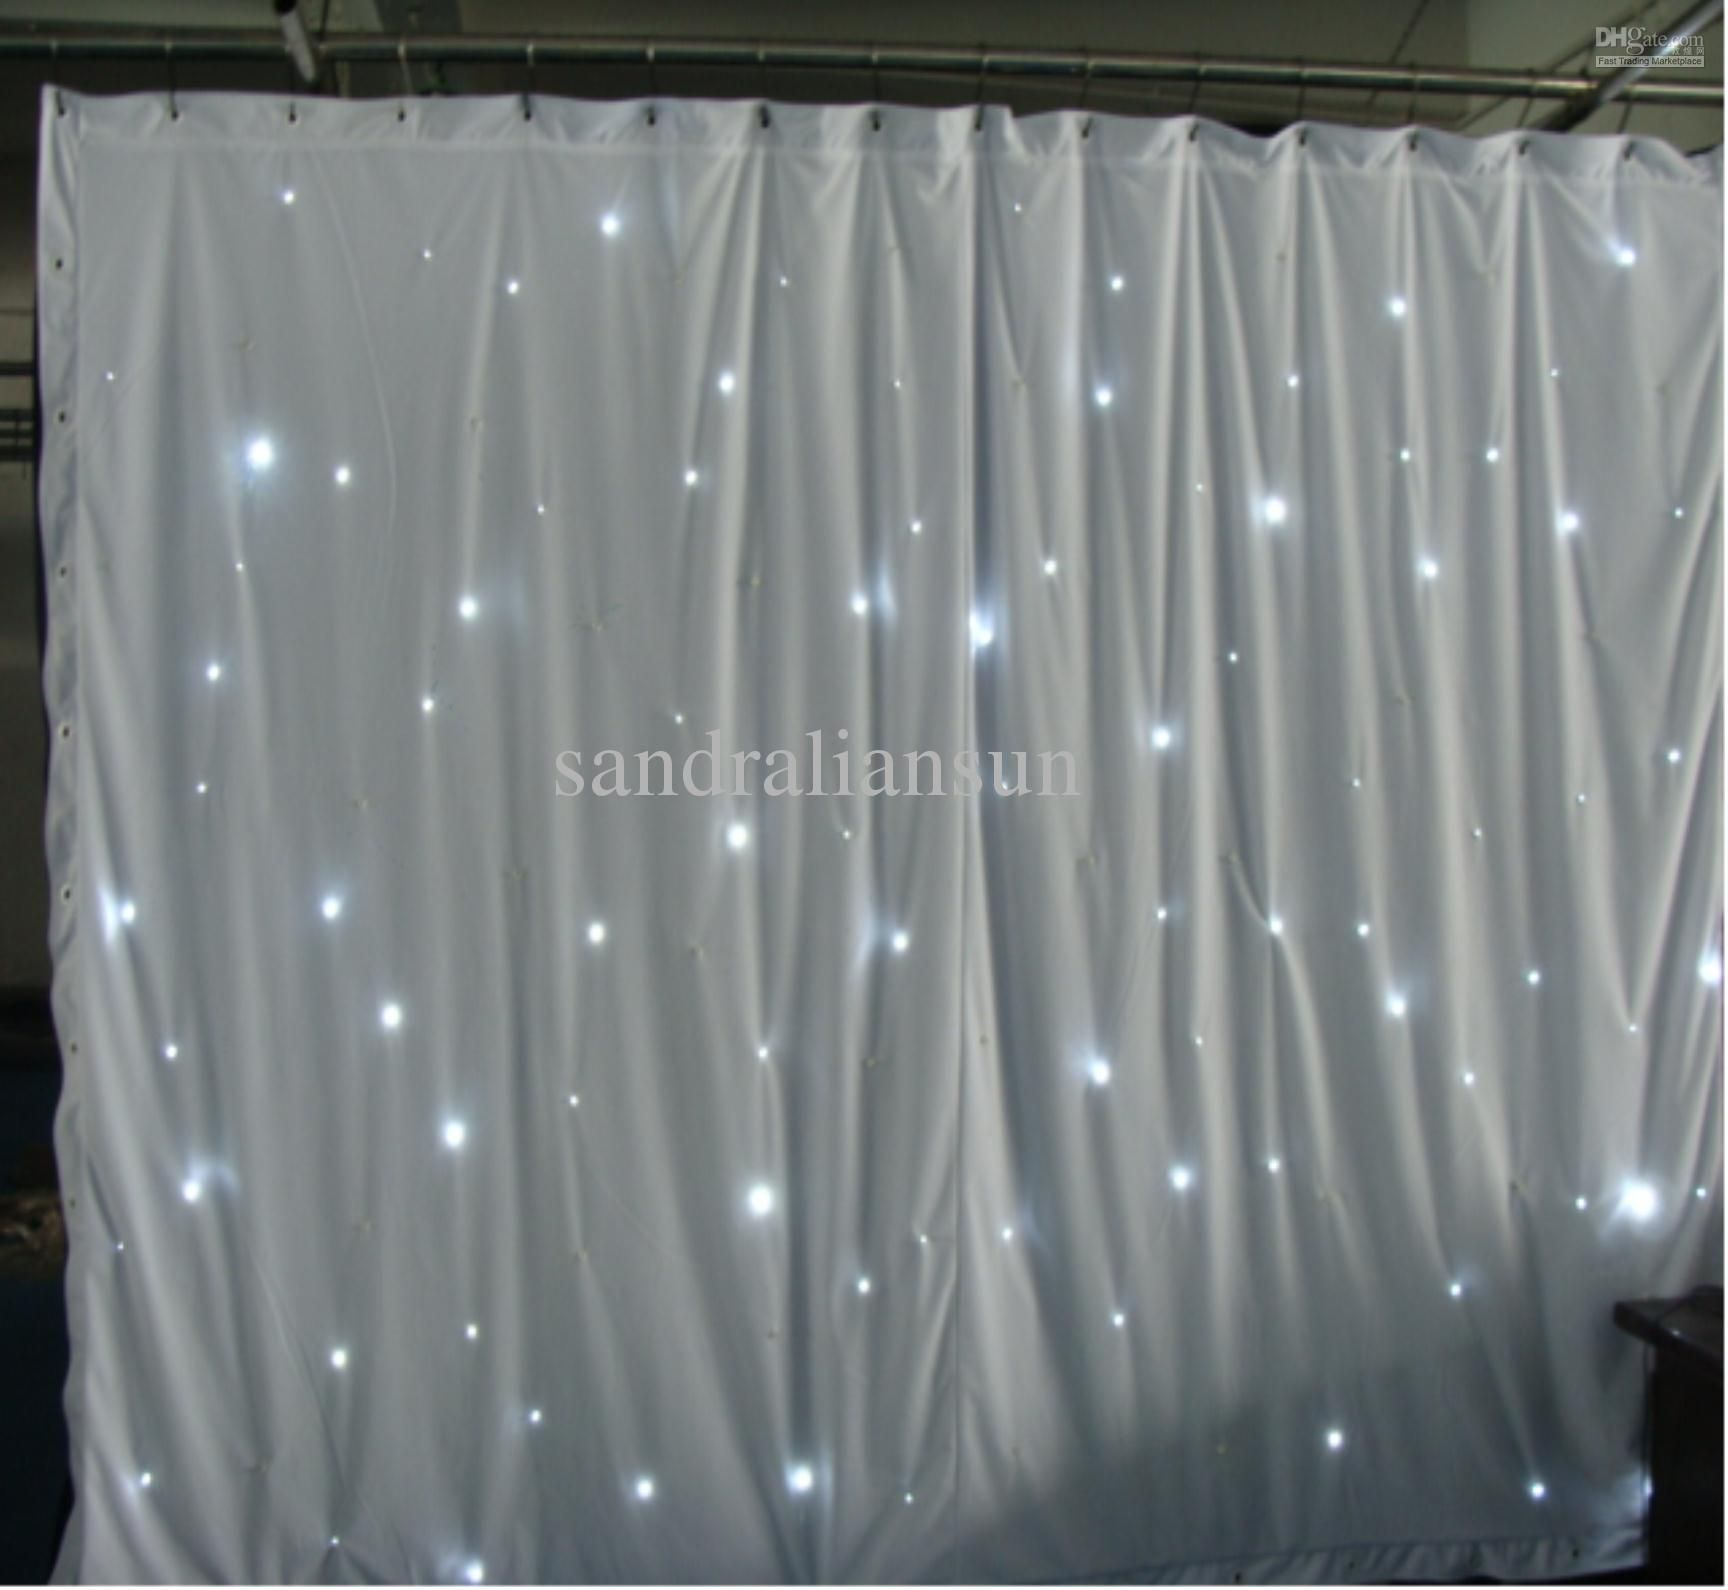 Curtain lights for weddings - Top Quality 8x3m Smd5050 White Led Curtain Lights Backdrop For Weddings Star Cloth Curtain Light With White Fireproof Velour